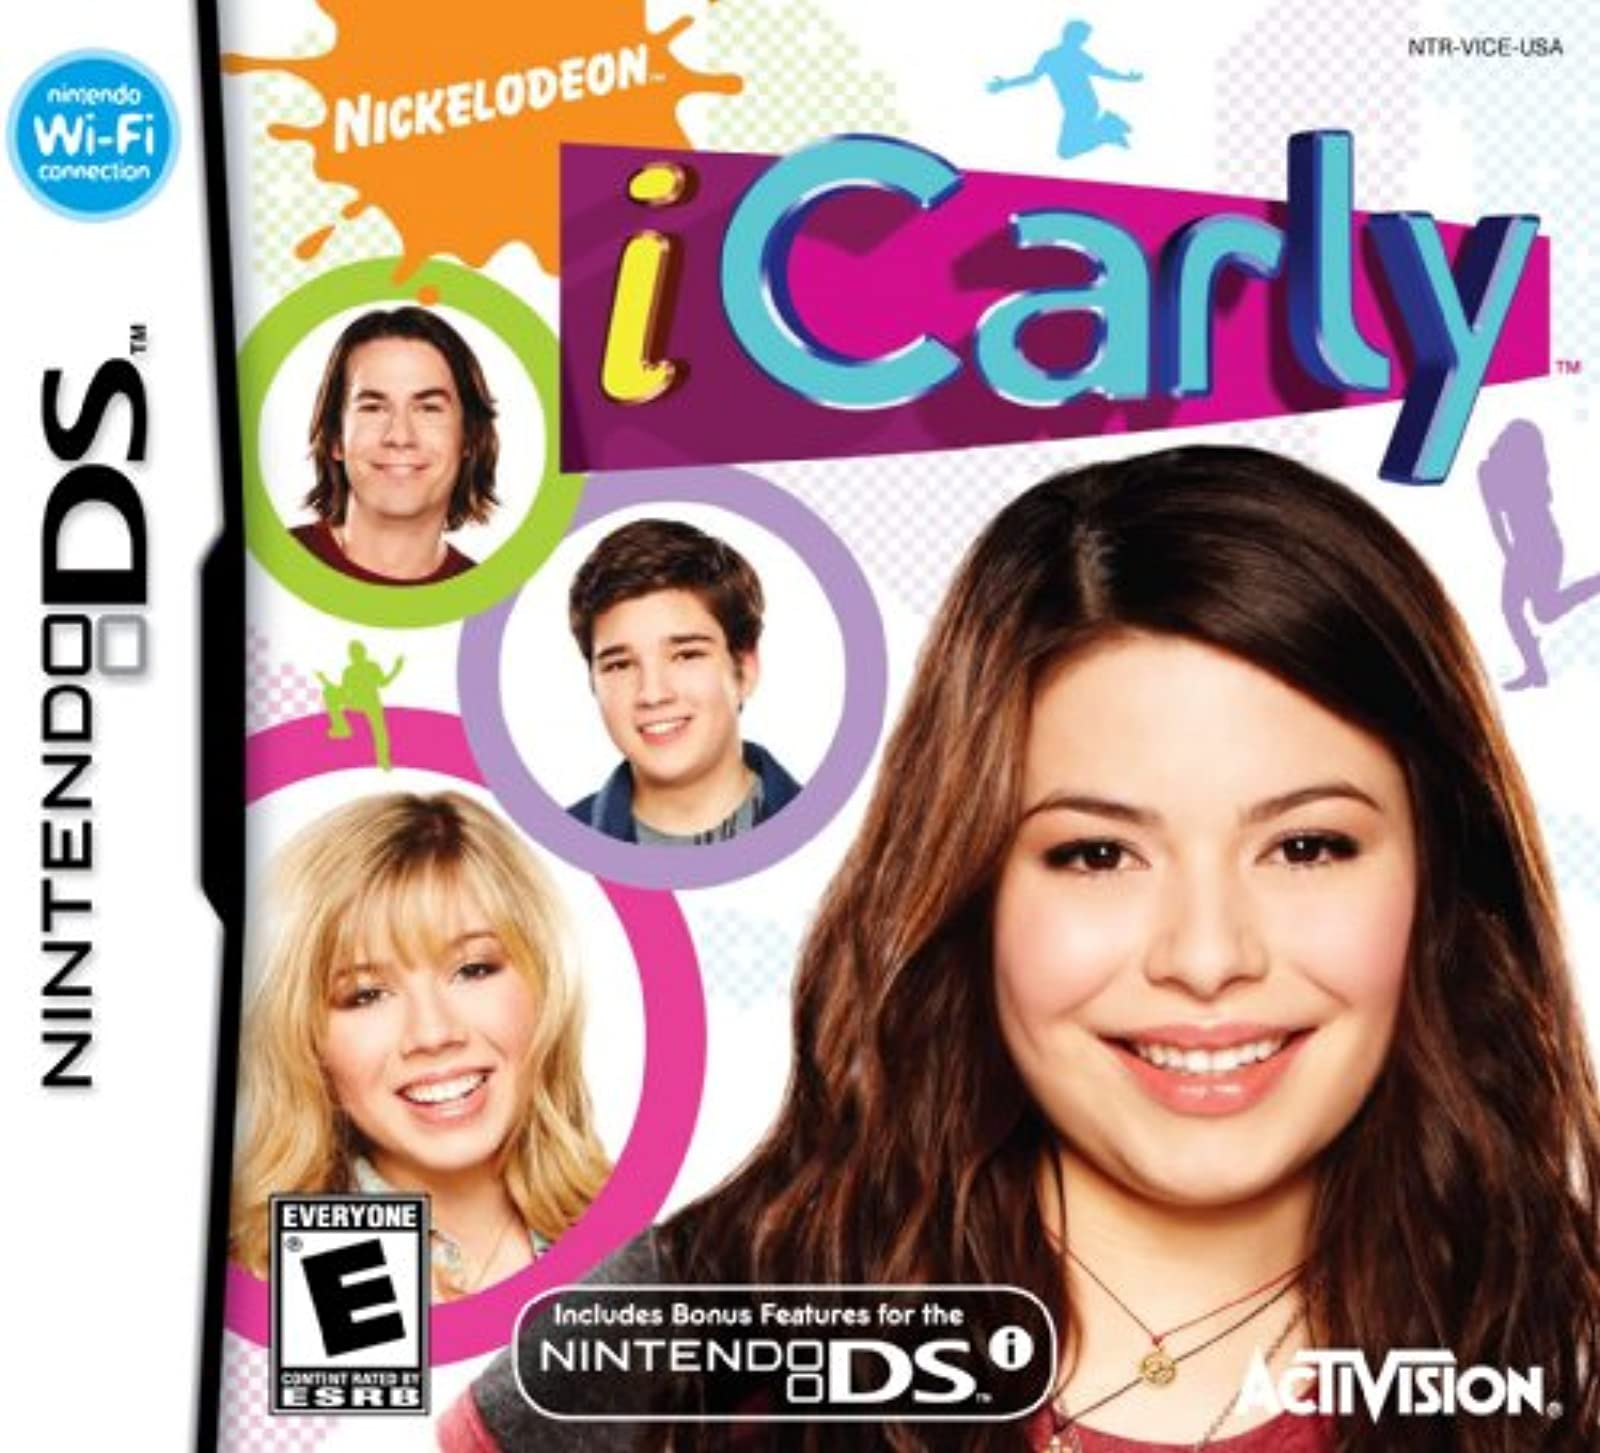 Icarly For Nintendo DS DSi 3DS 2DS Trivia